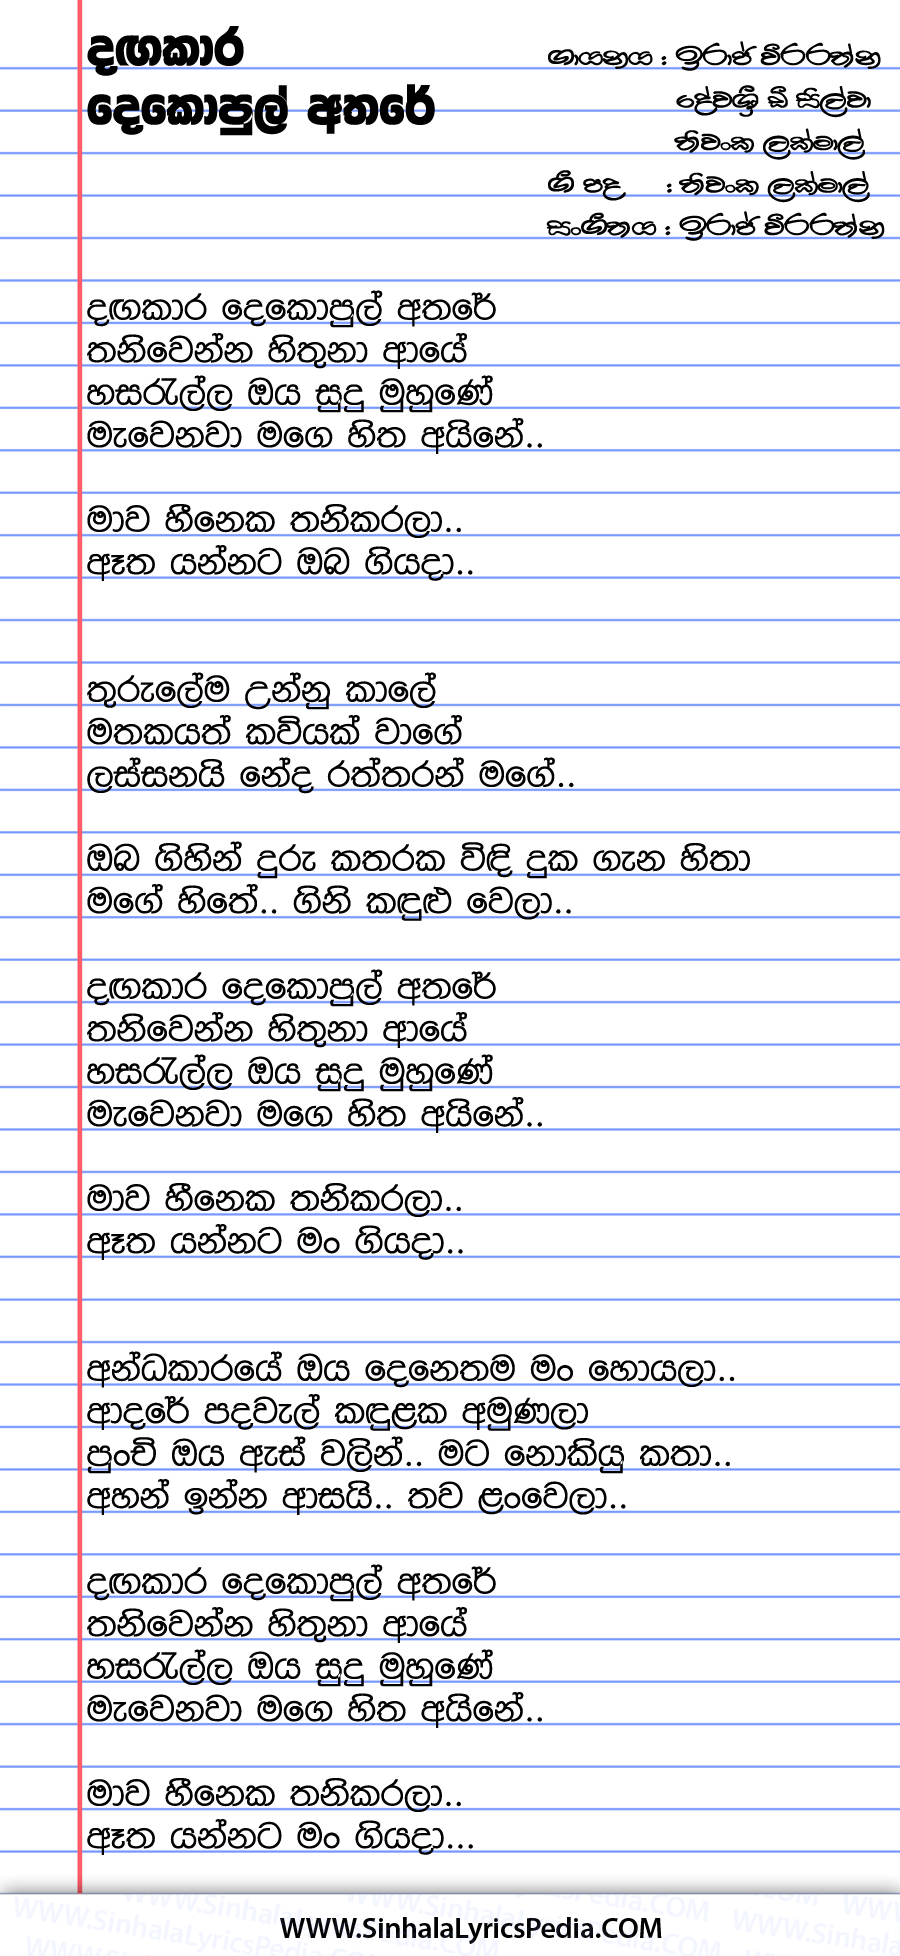 Heeneka Thanikarala (Dagakara Dekopul Athare) Song Lyrics